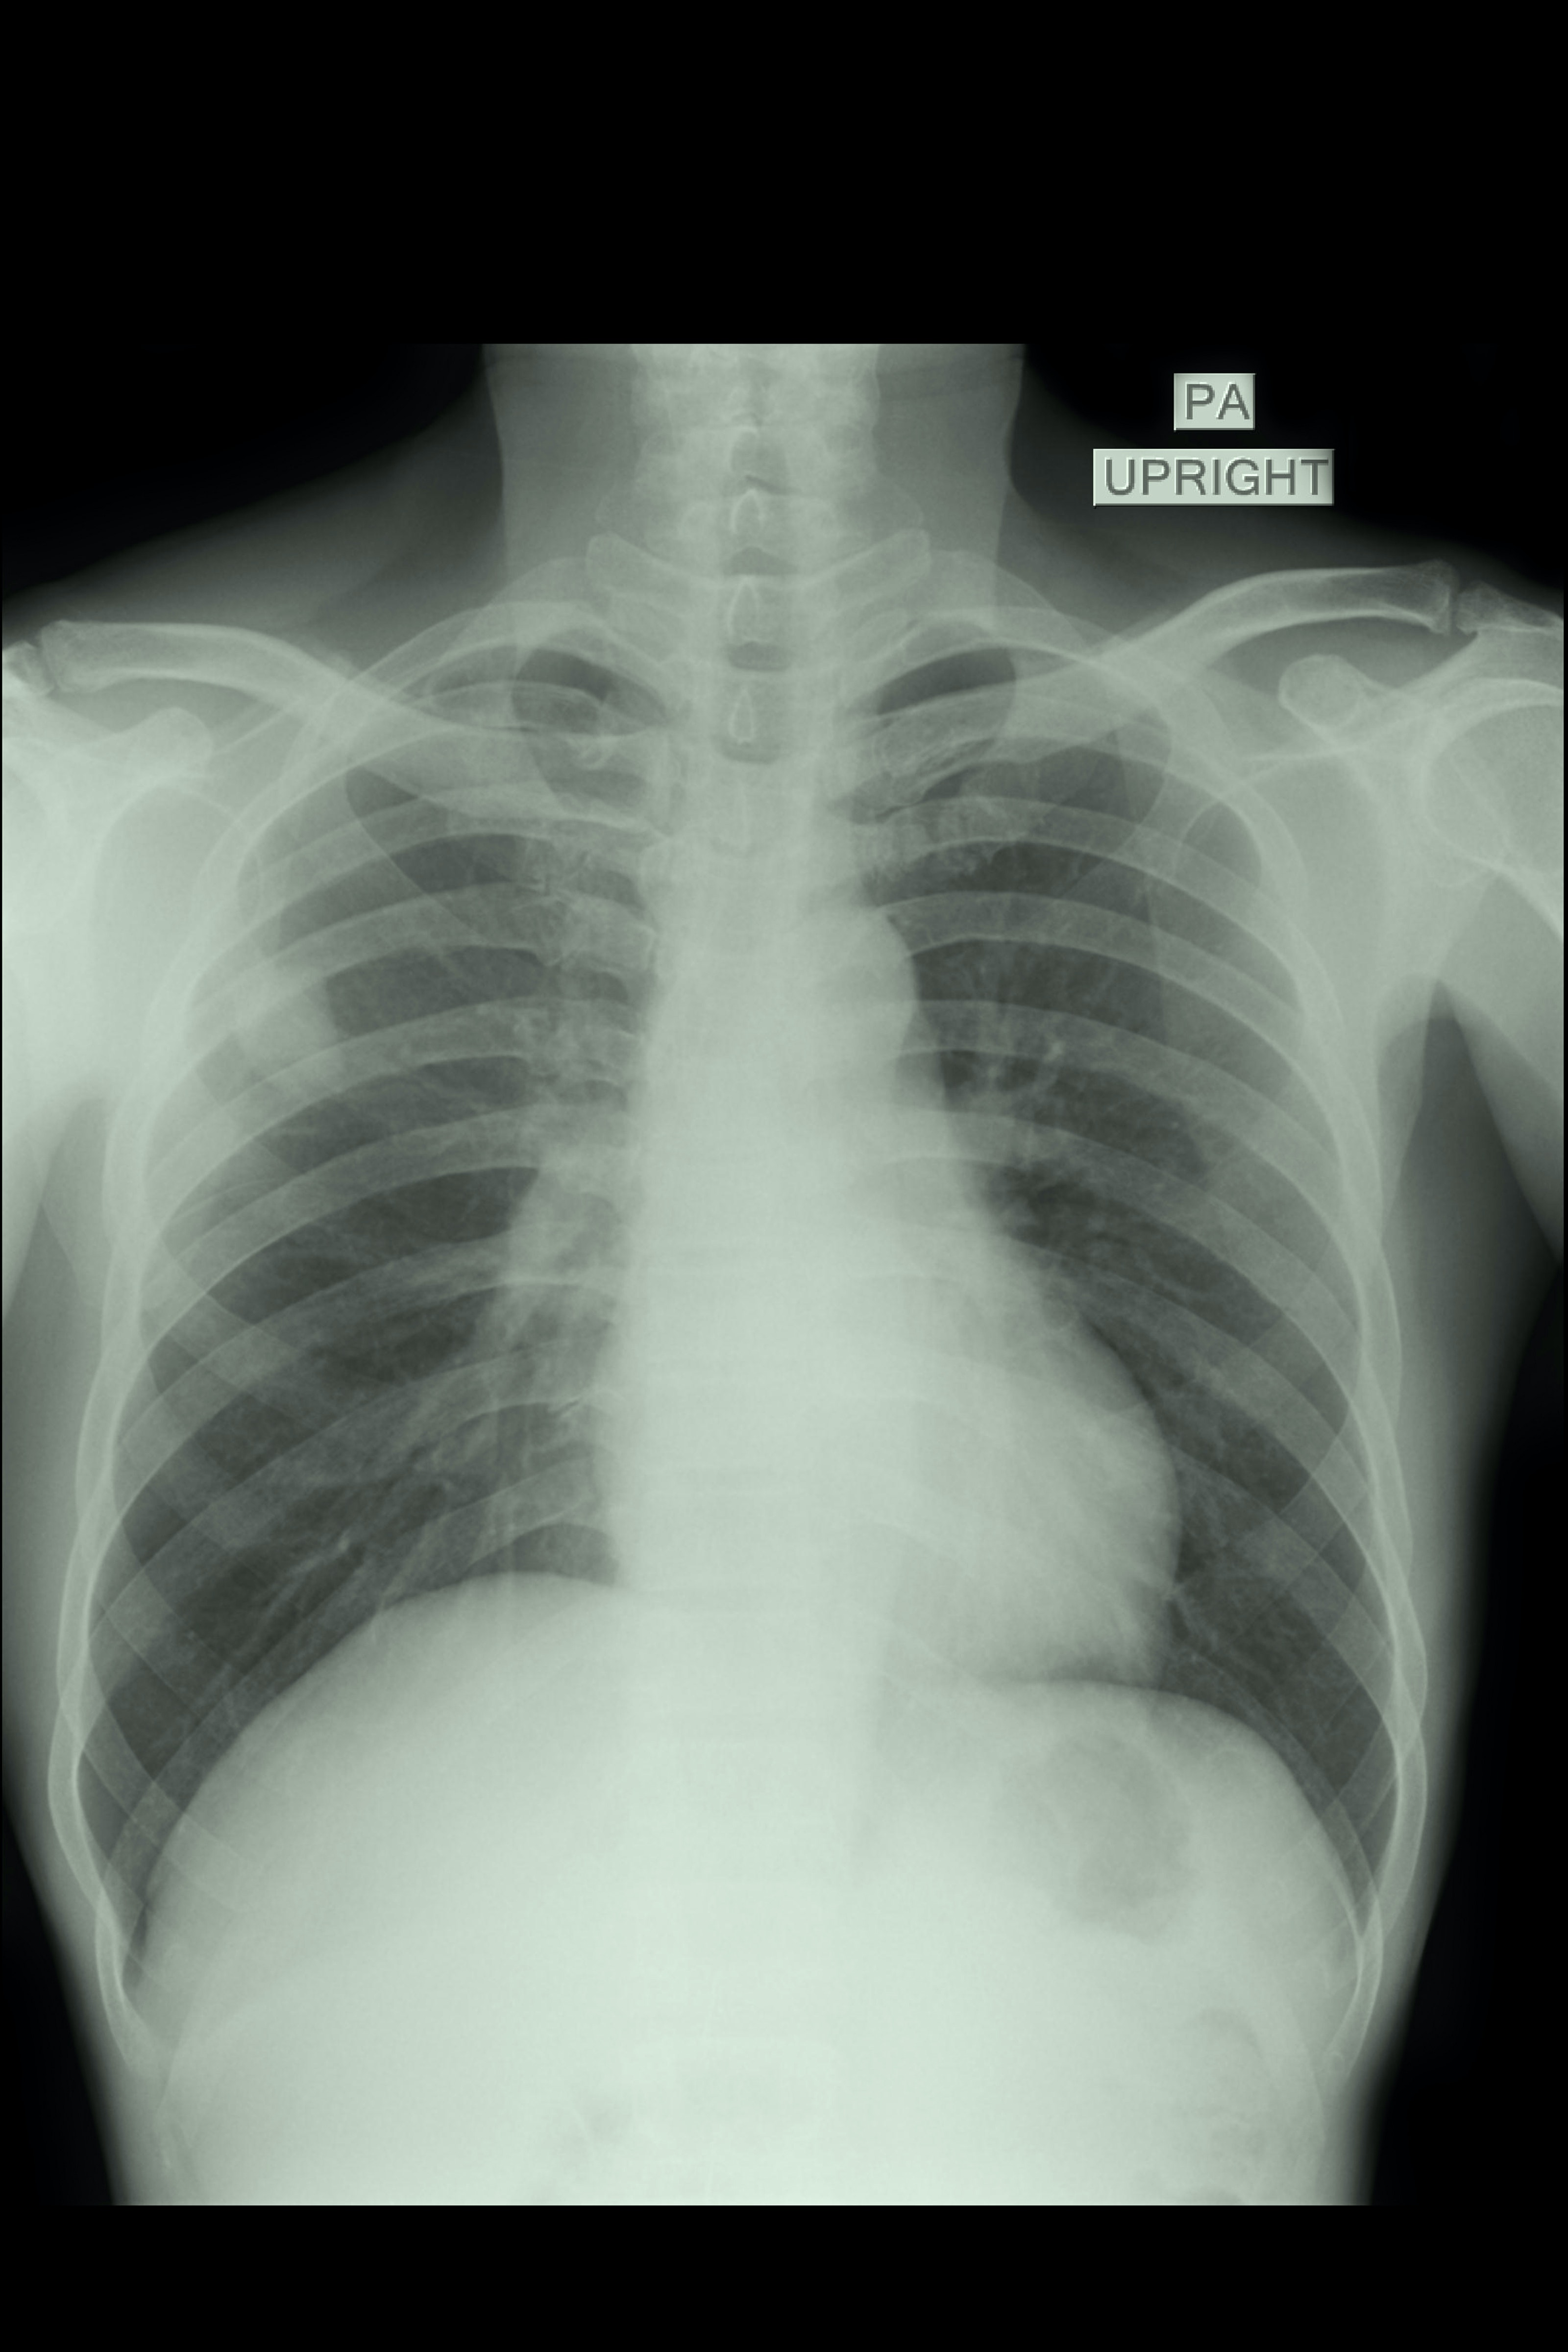 An image depicting a person suffering from painless chest wall lump symptoms